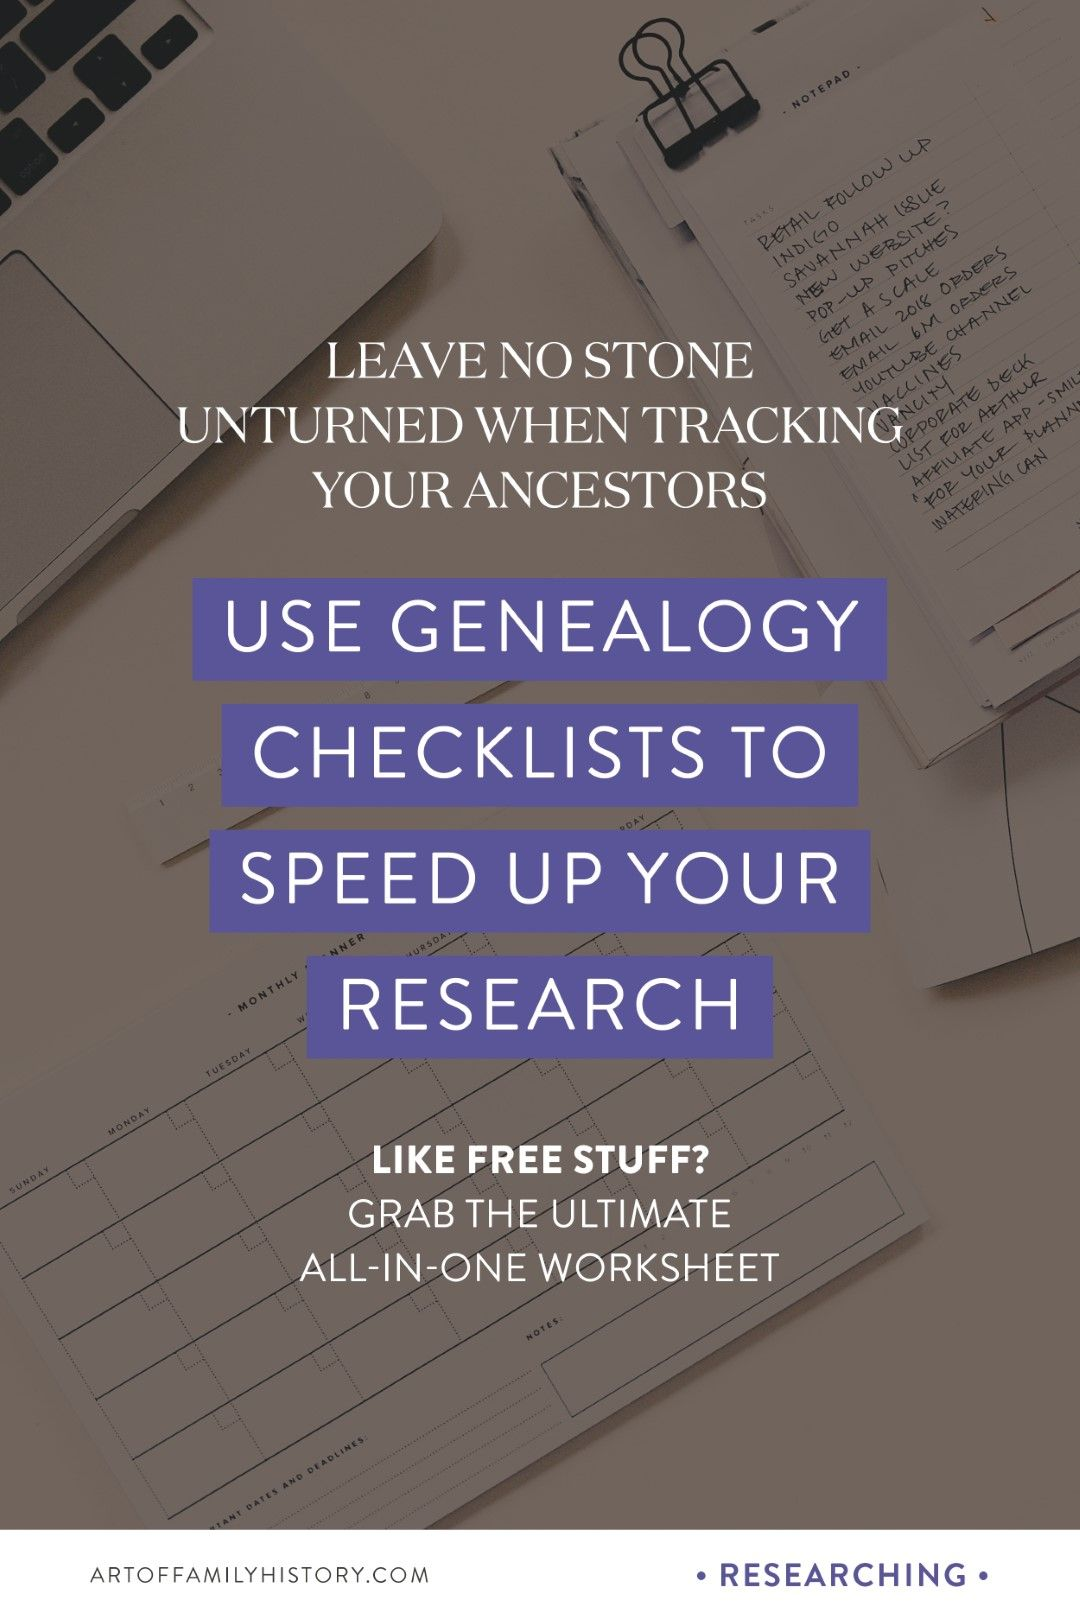 How Genealogy Checklists Will Improve Your Research